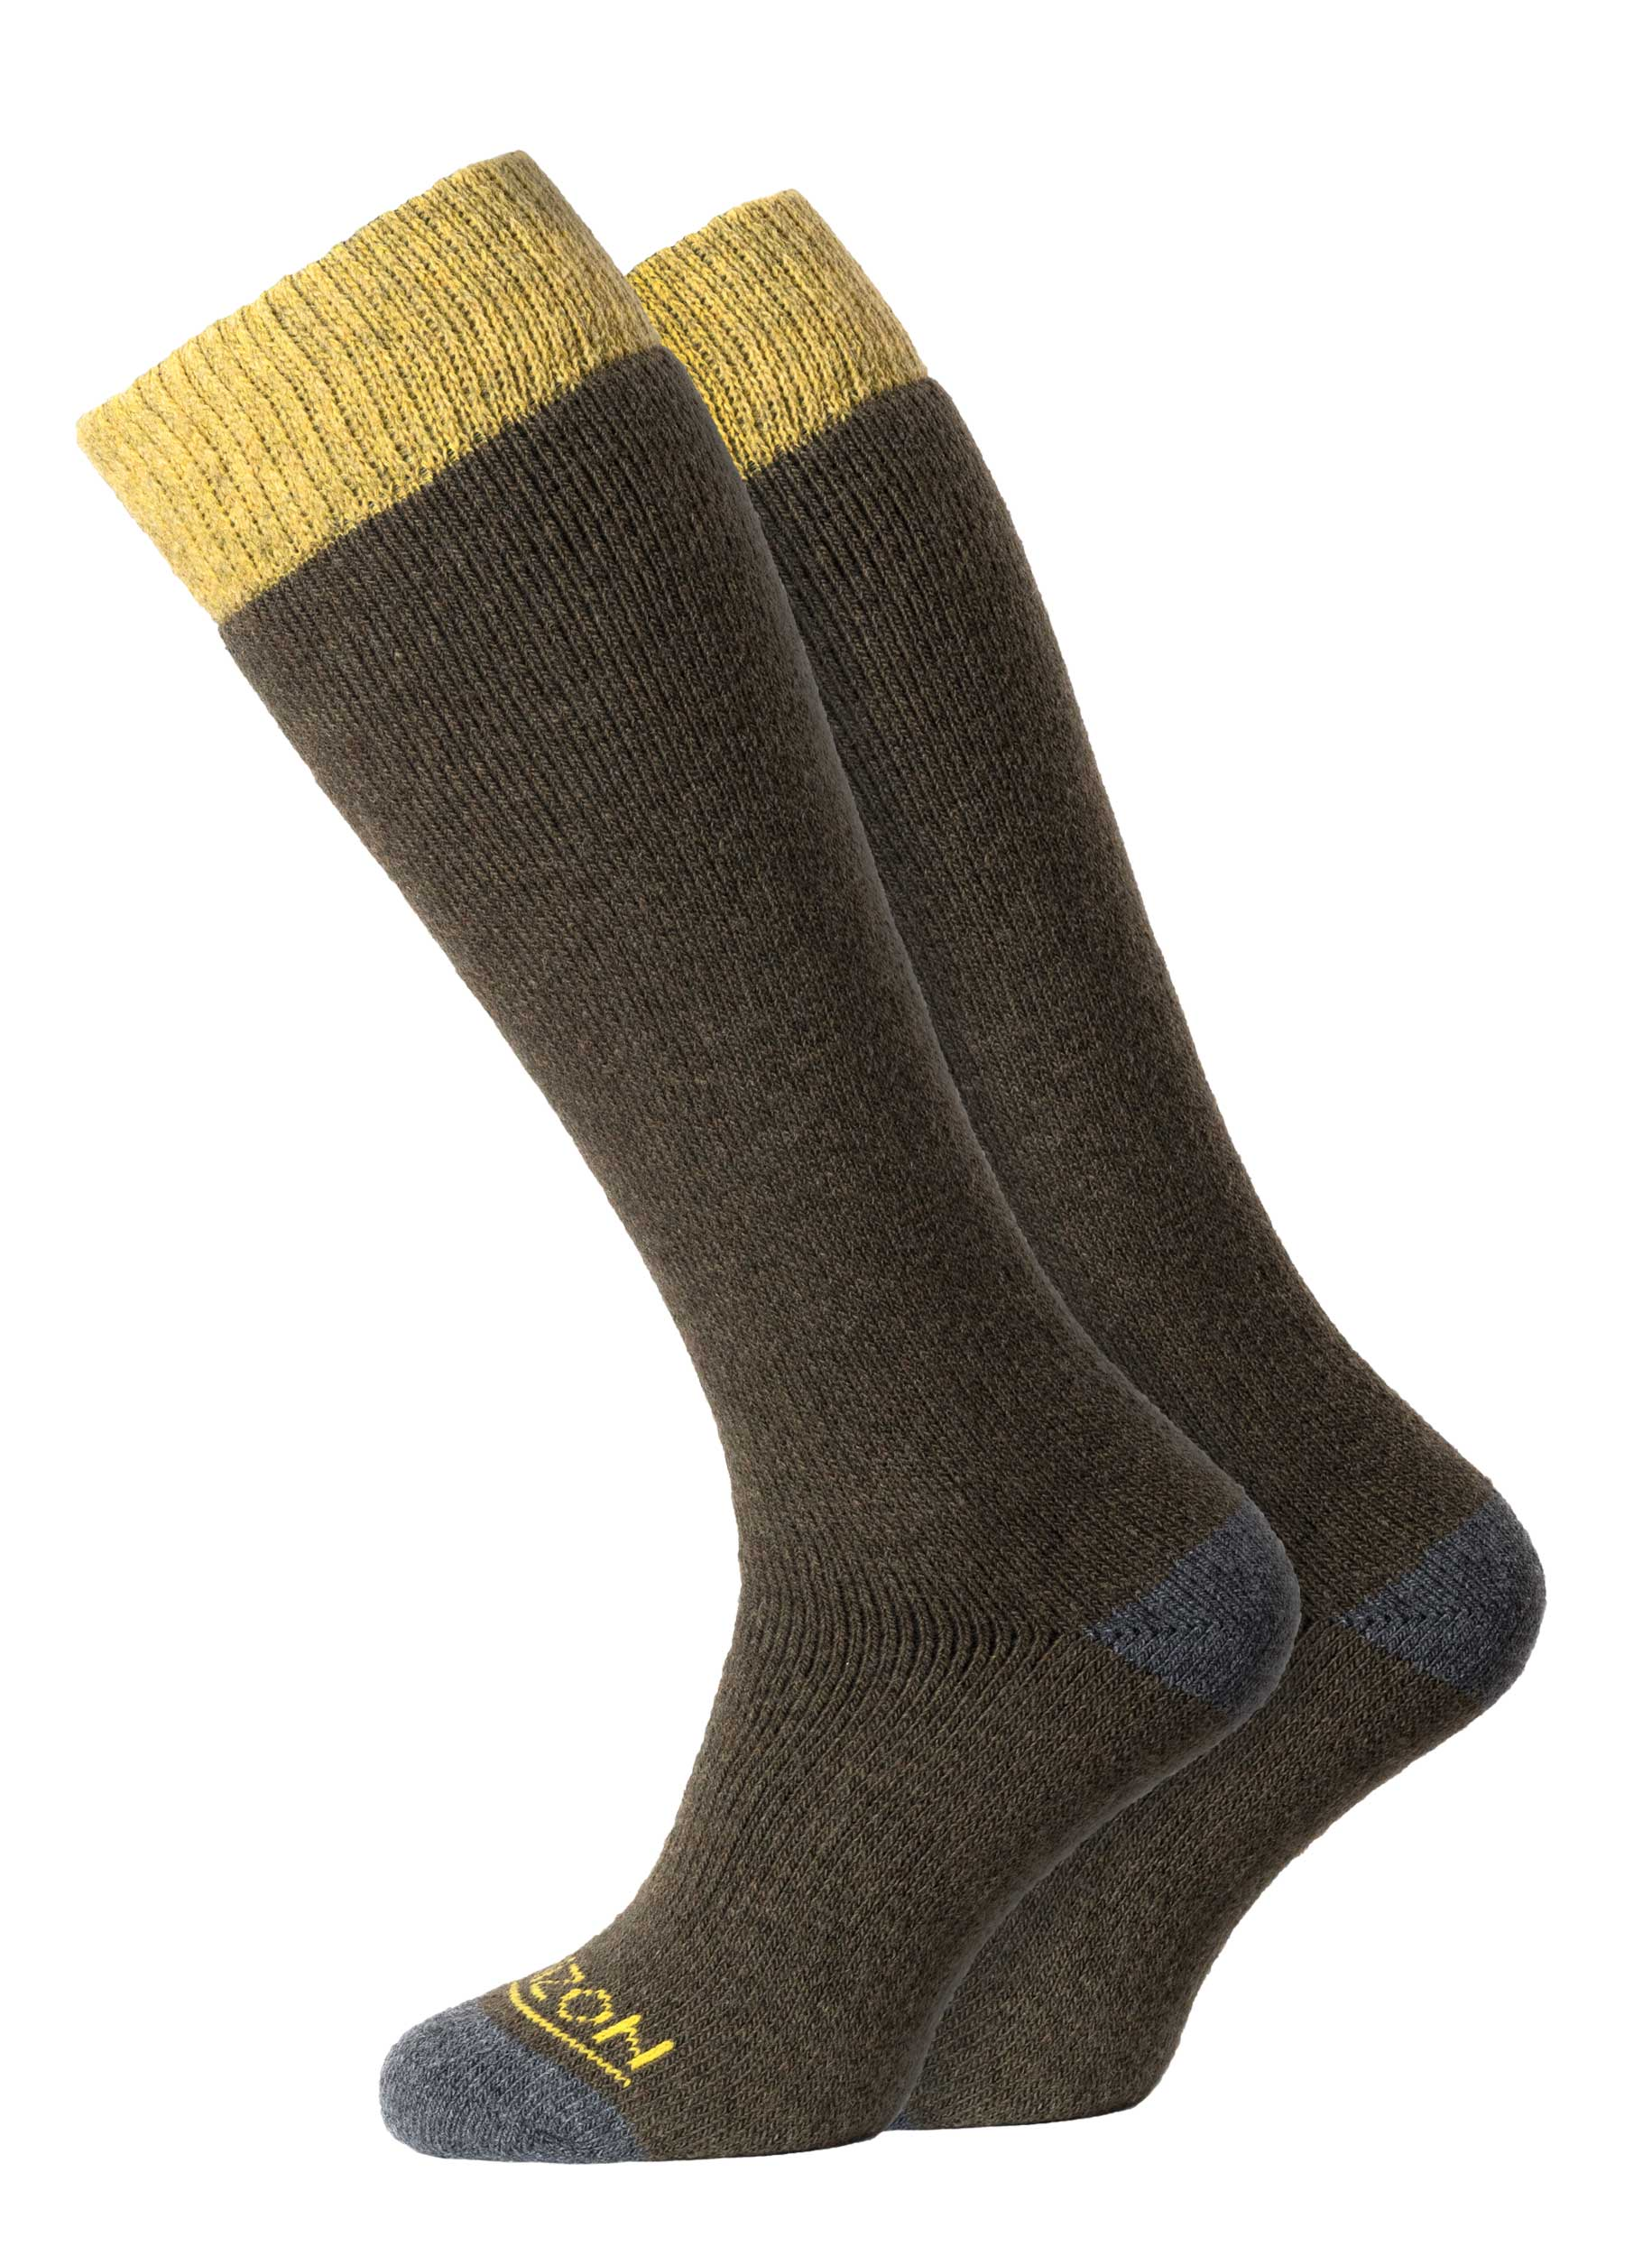 Winter Sport Merino 2pk Olive/Yellow